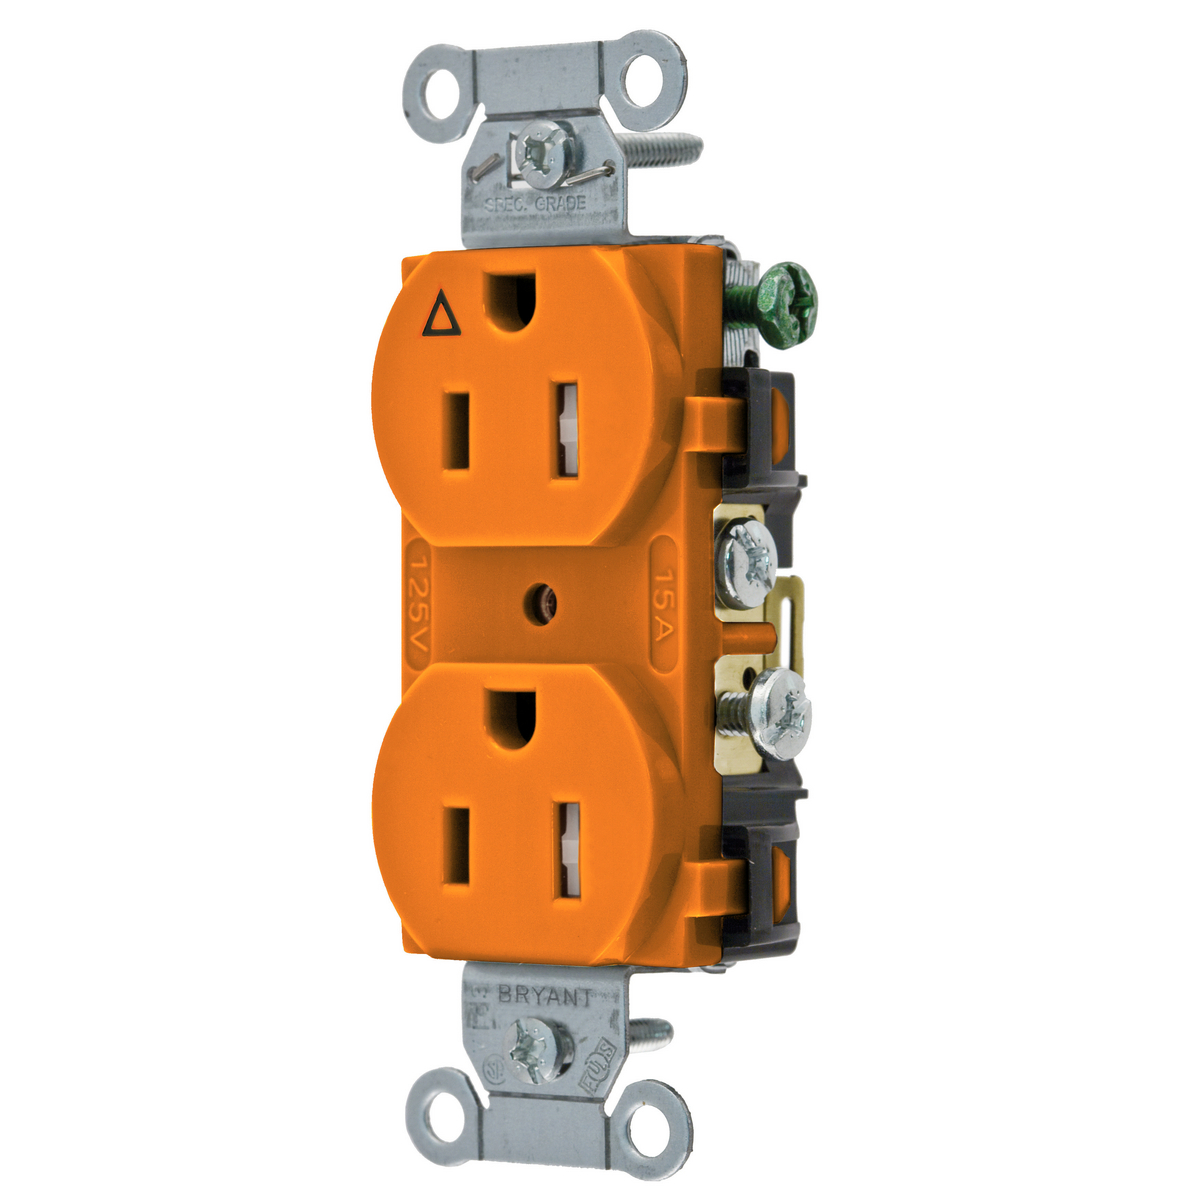 cr15ig construction commercial receptacles straight blade rh hubbell com bryant wiring devices cross reference bryant wiring devices catalog